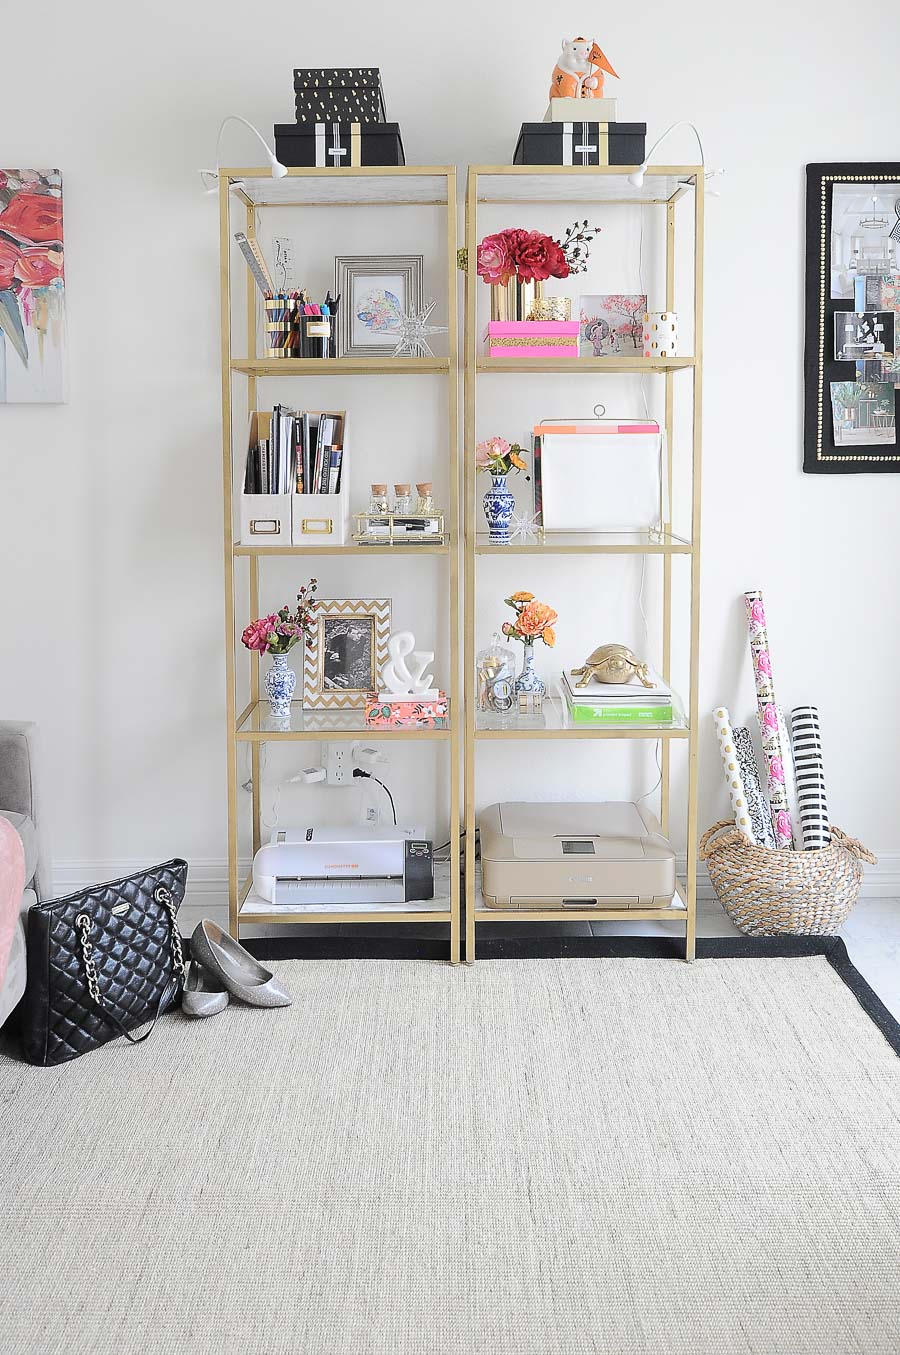 How to style IKEA VITTSJO shelves in a home office space. Love the decor and DIY ideas.